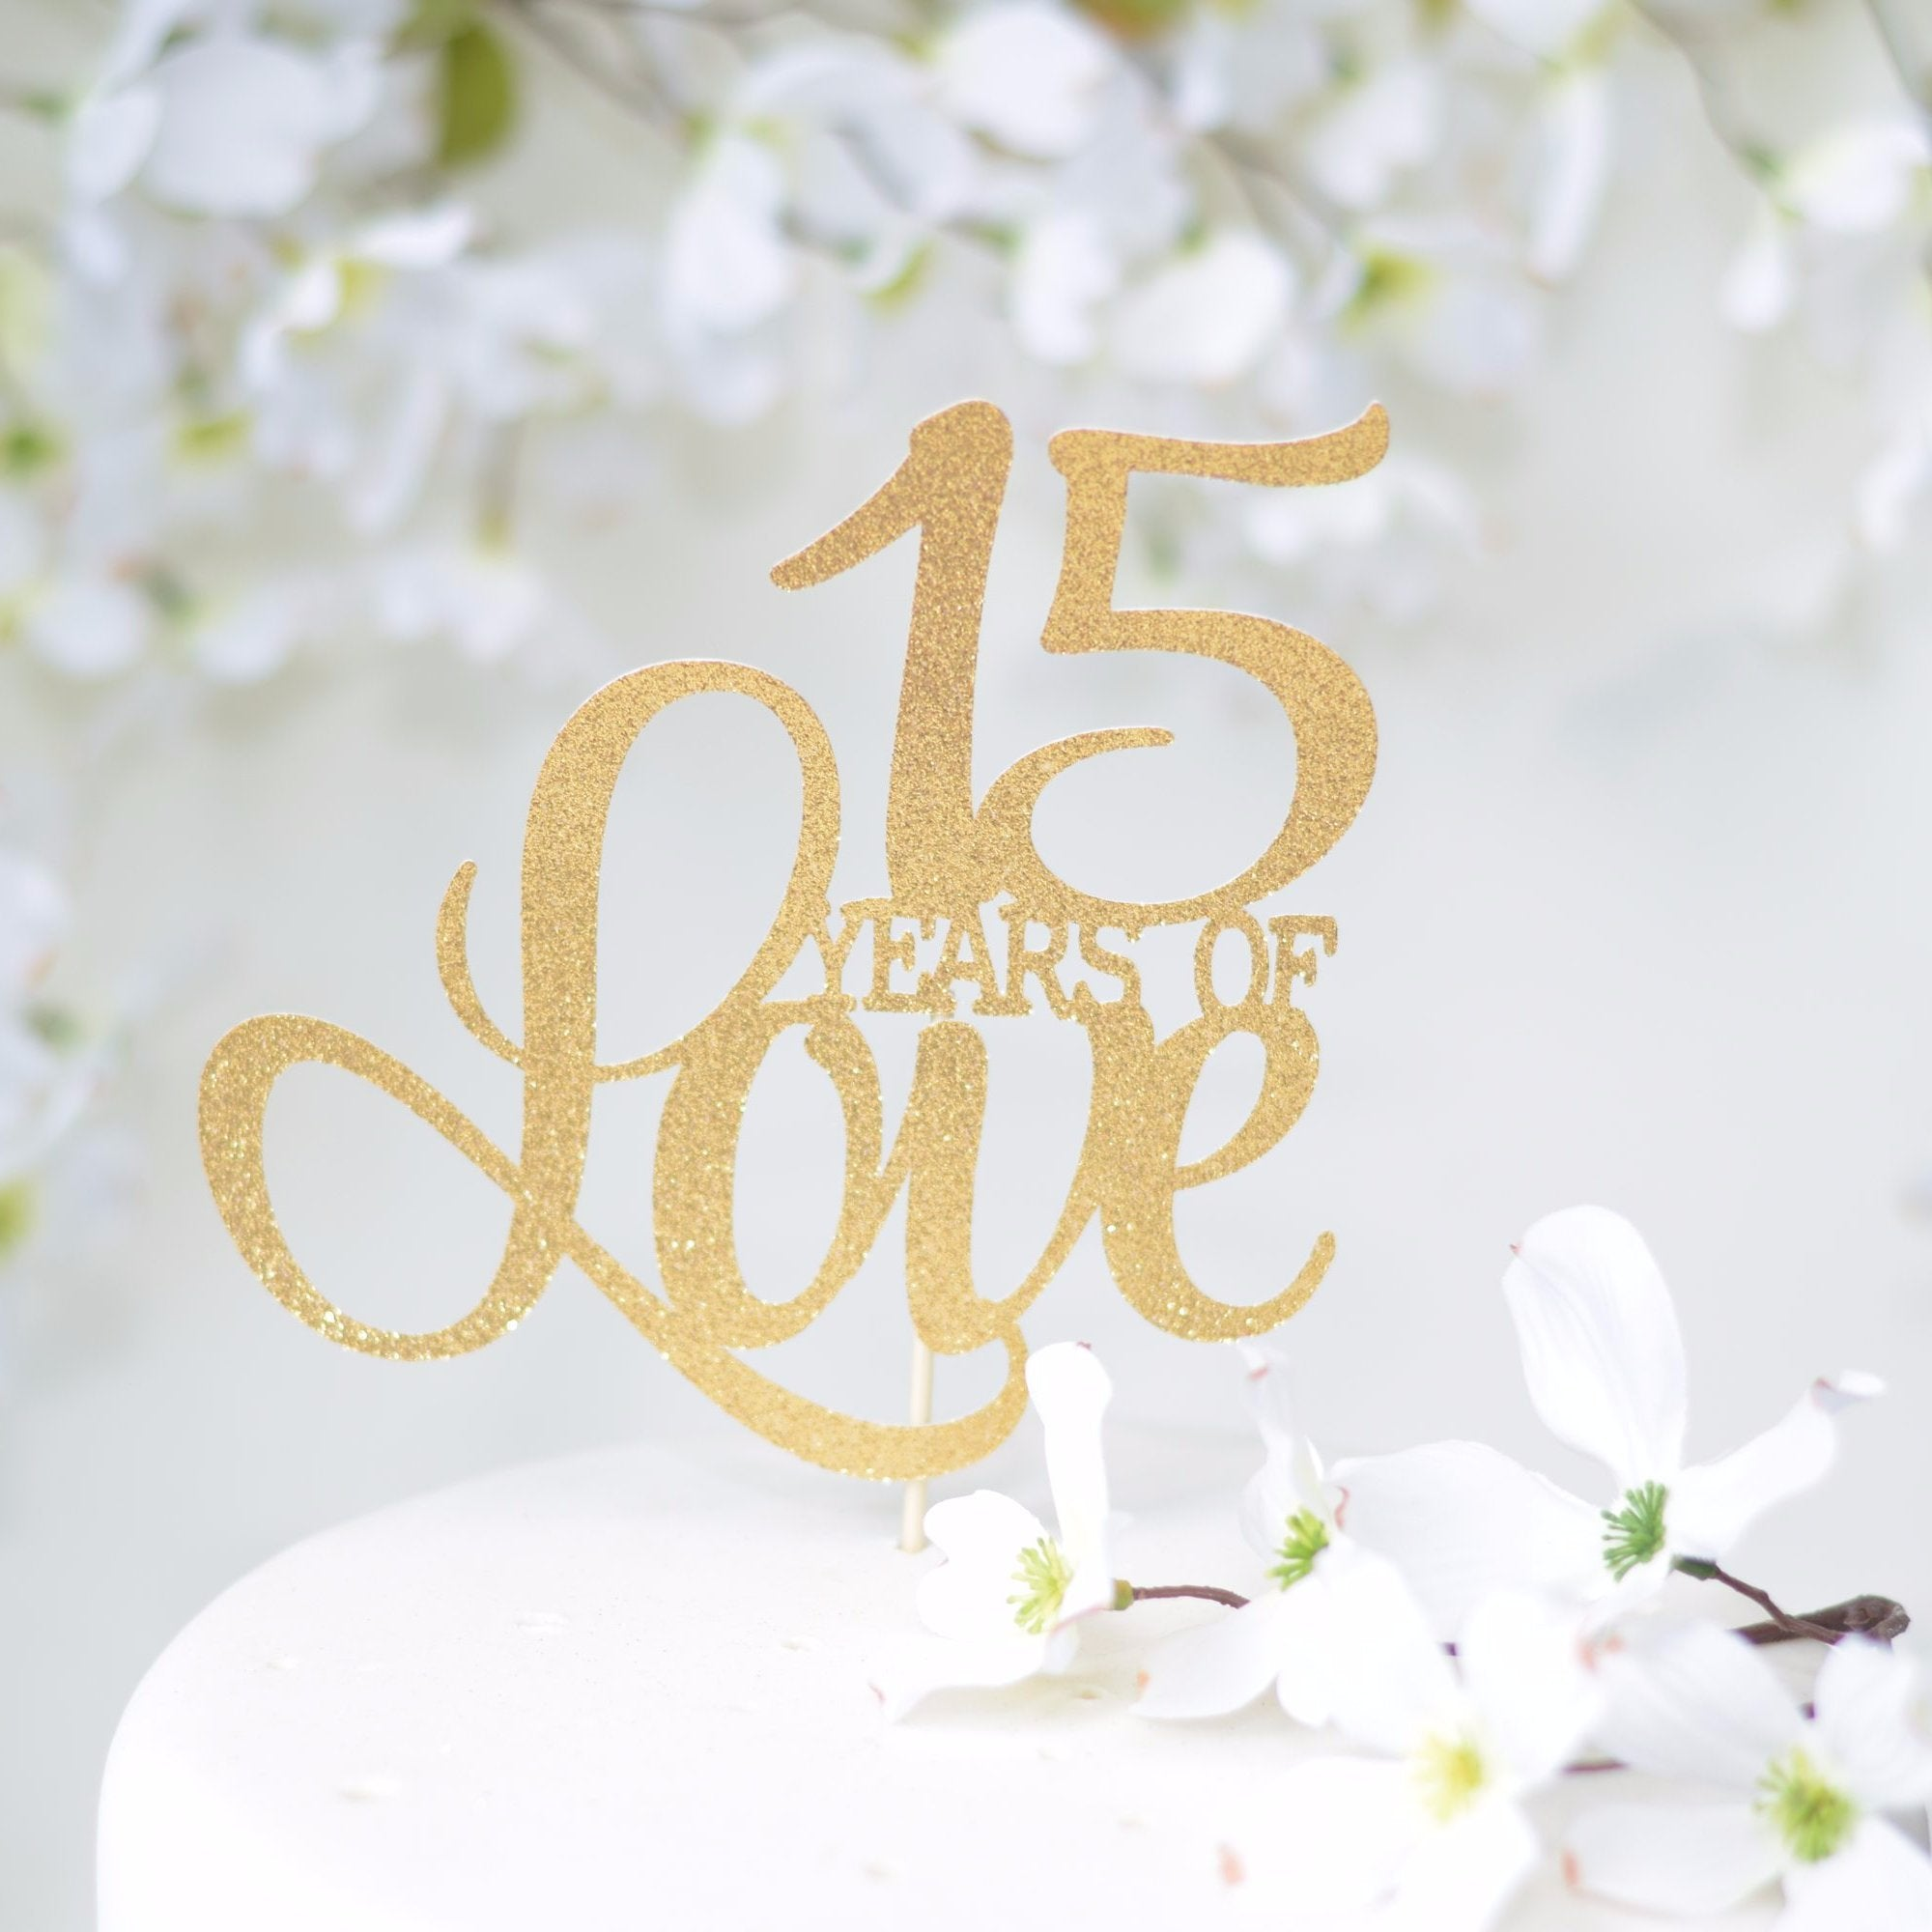 Years Of Love Wedding Anniversary Cake Topper Style 3 - Sugar Crush Co.